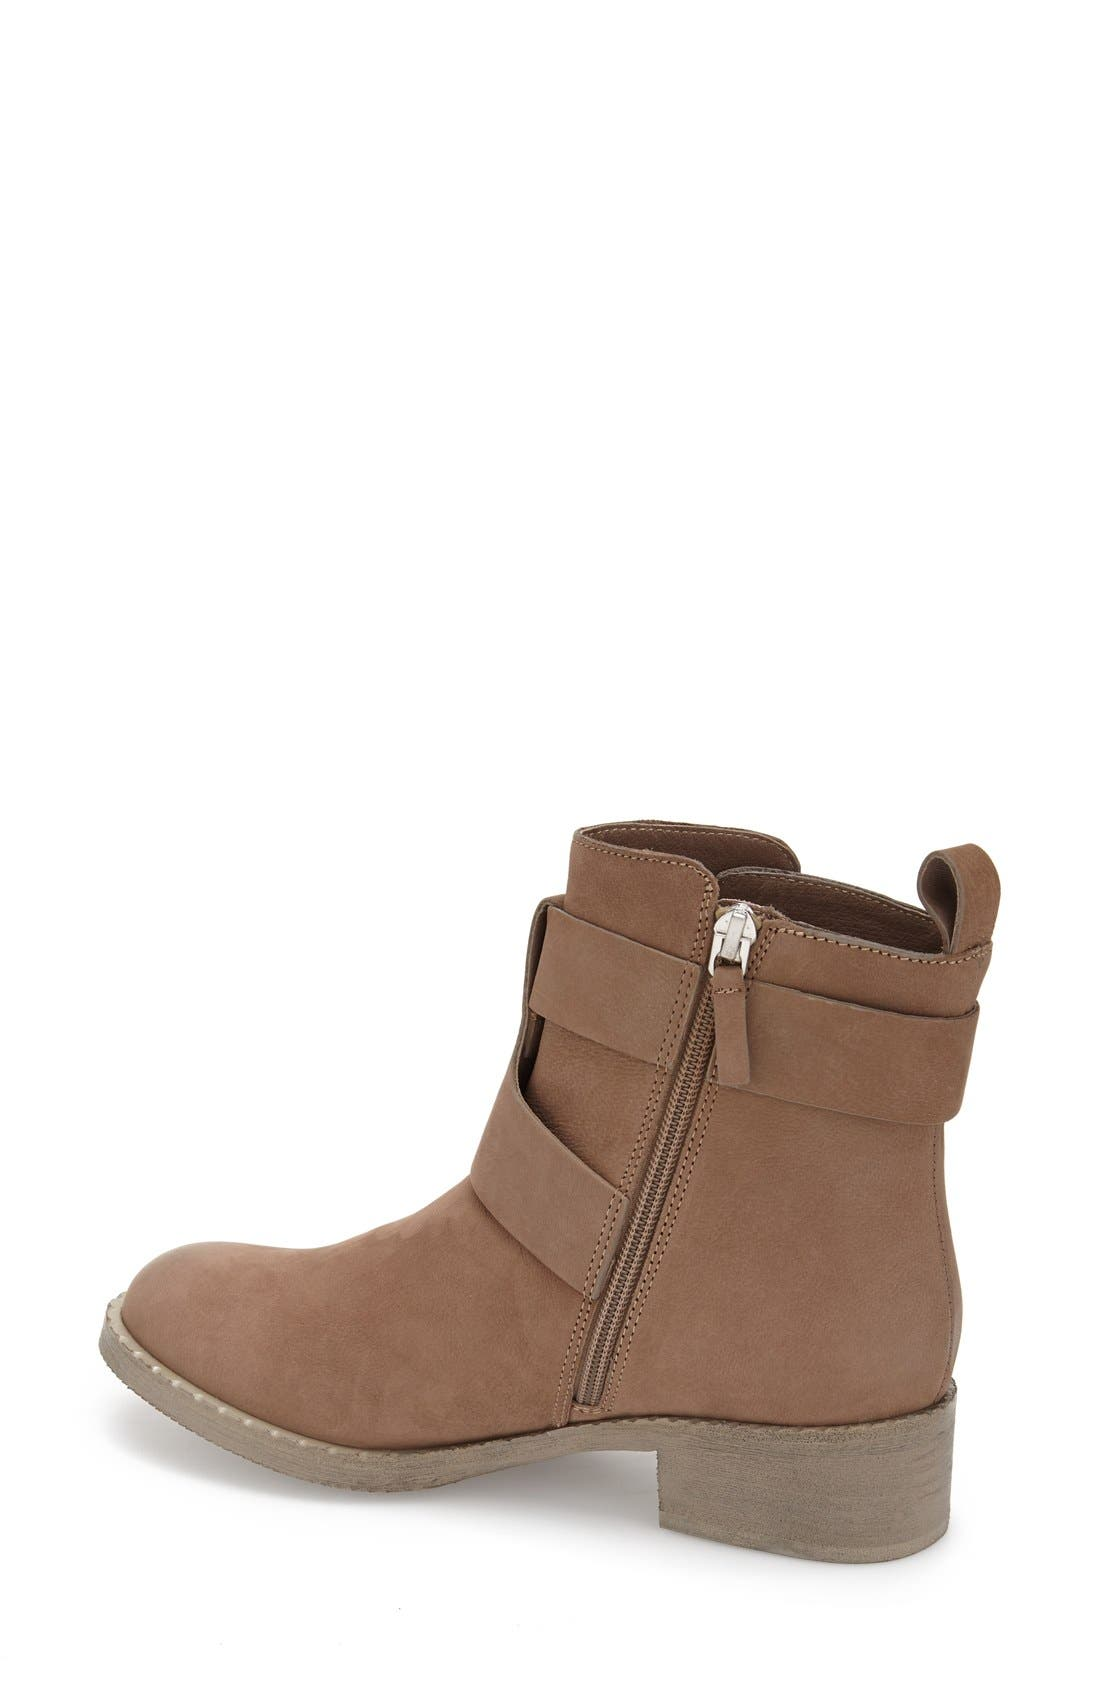 by Kenneth Cole 'Best Of' Boot,                             Alternate thumbnail 2, color,                             Beige Nubuck